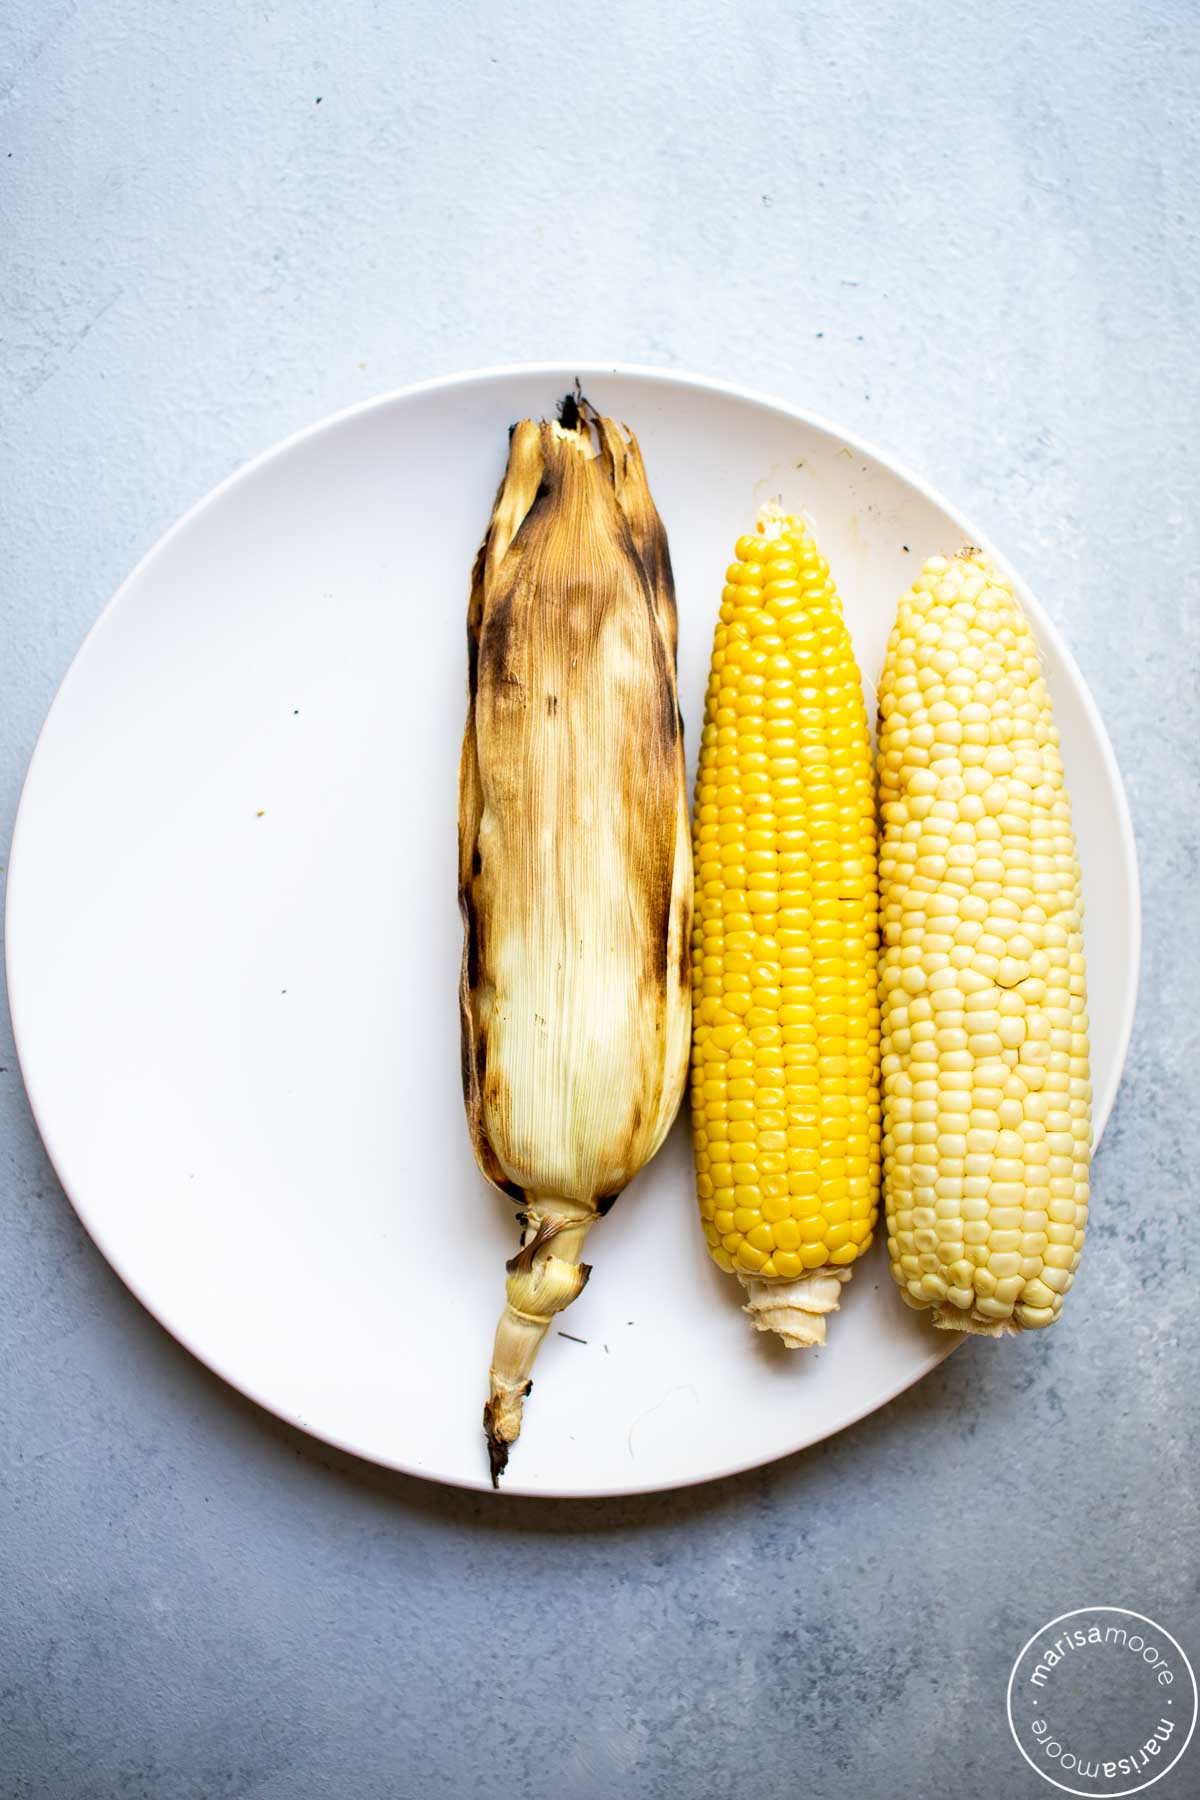 3 ears of grilled corn. One in the husk